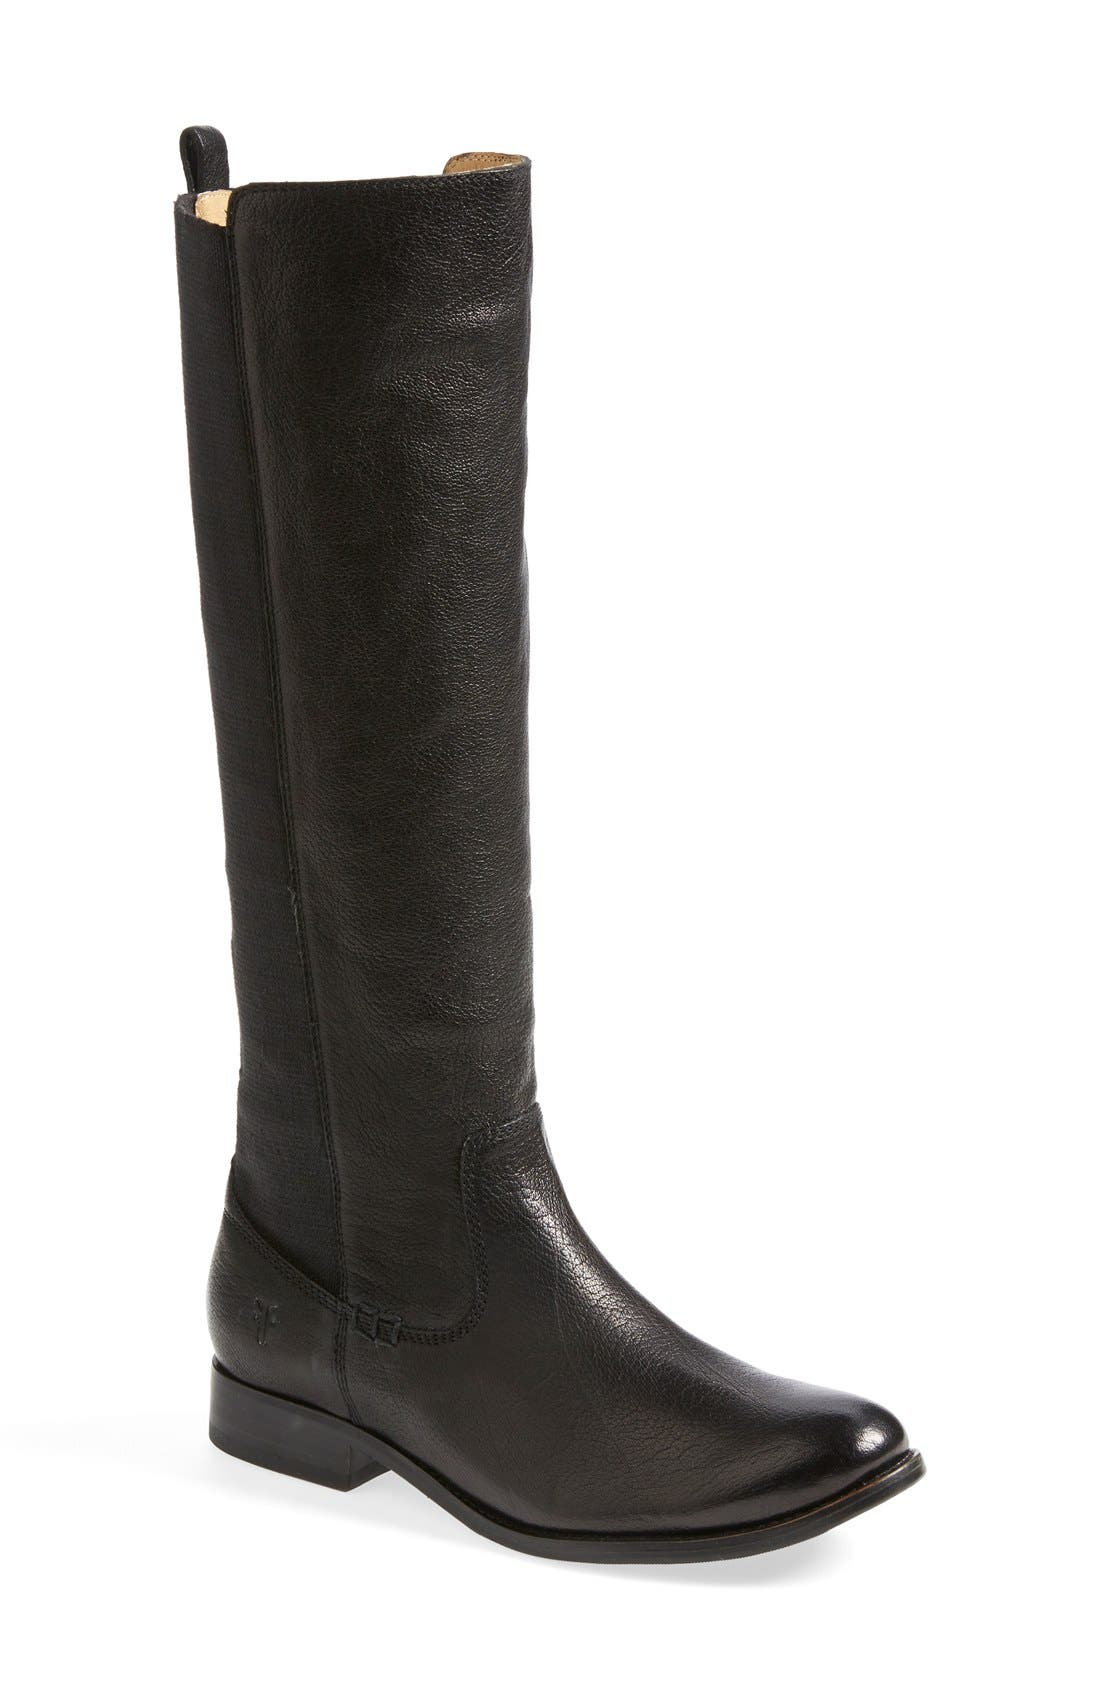 Main Image - Frye 'Molly' Gore Leather Boot (Women)